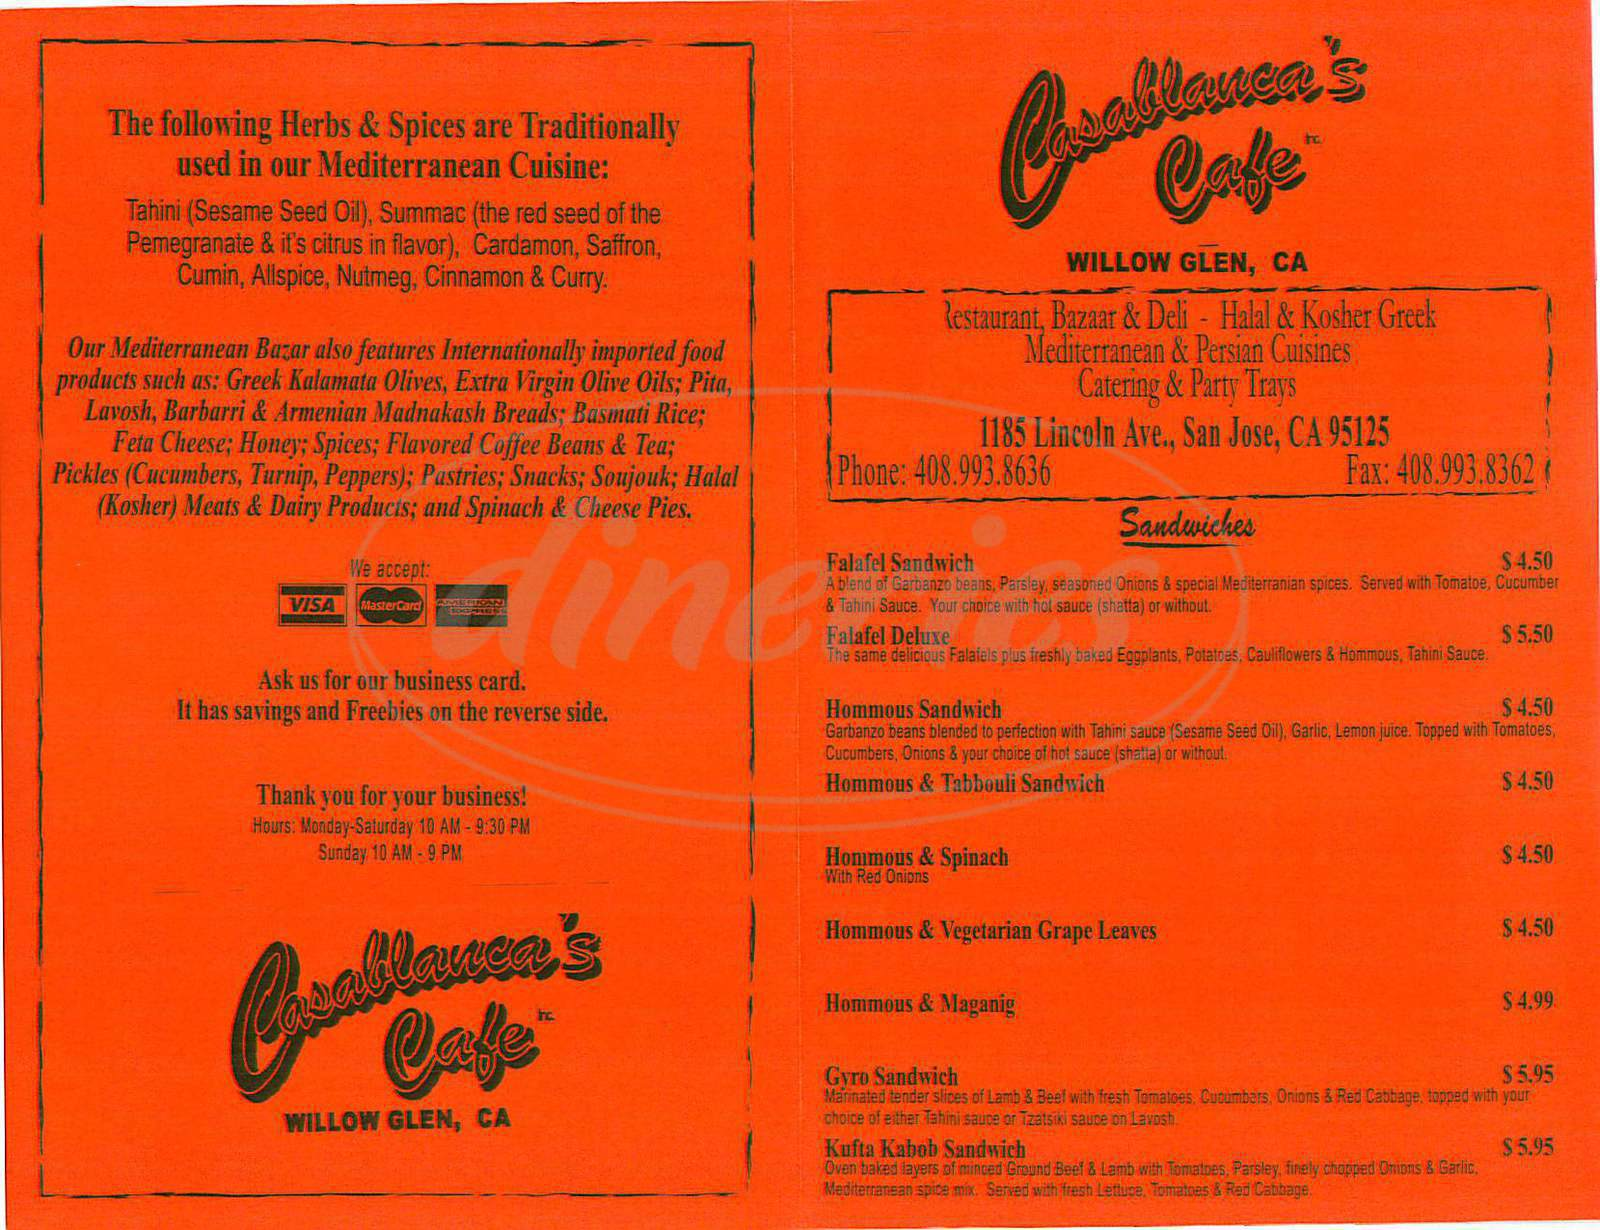 menu for Casablancas Café